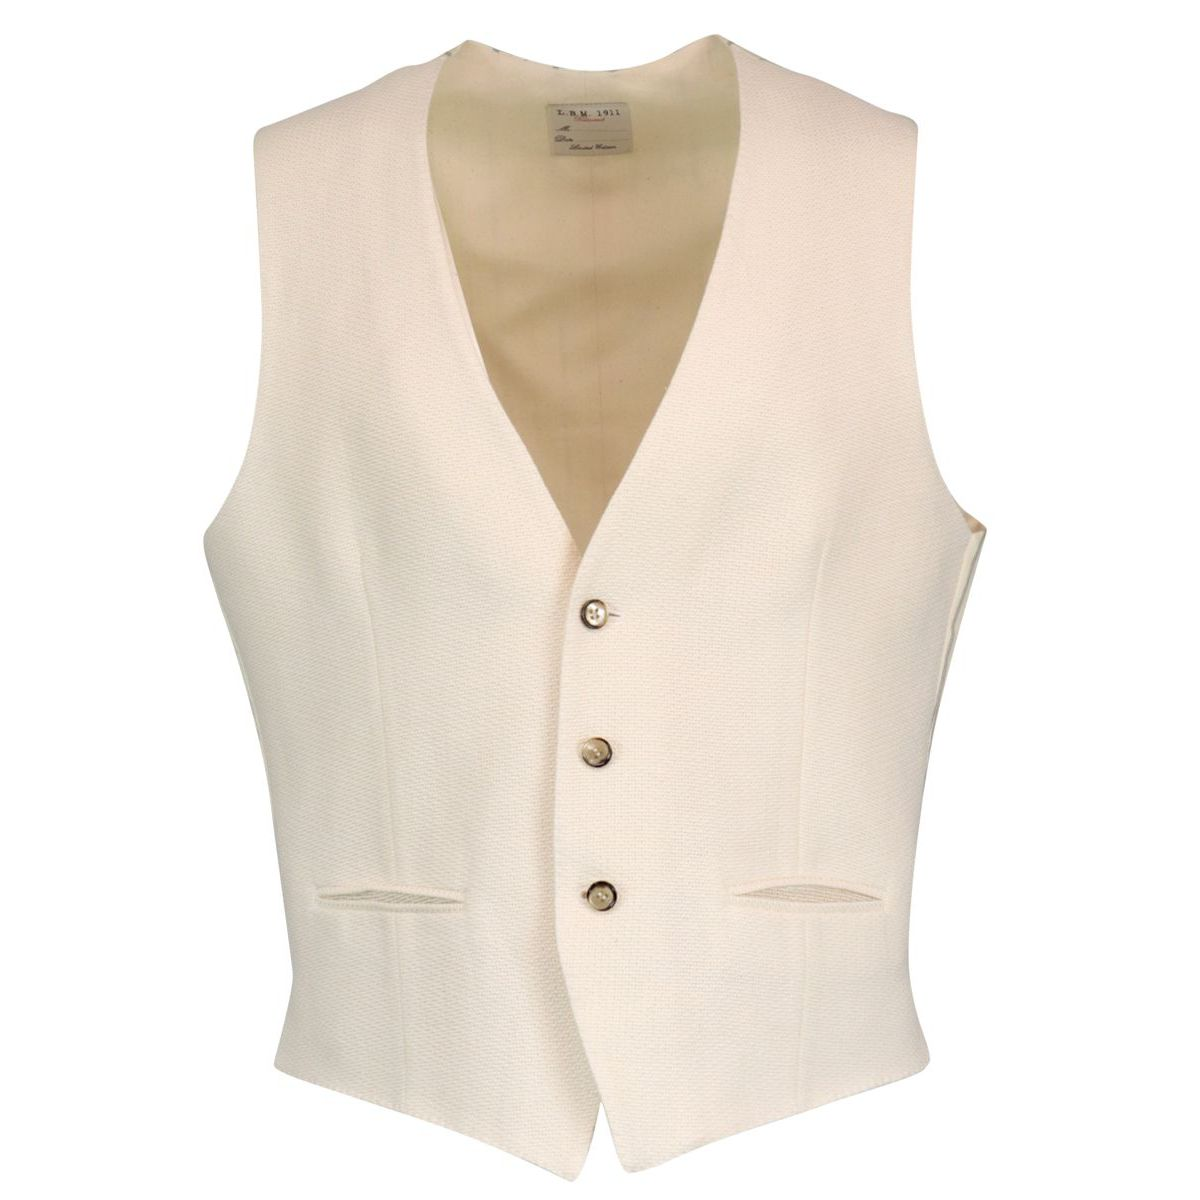 Cotton and linen textured waistcoat Cream L.B.M. 1911